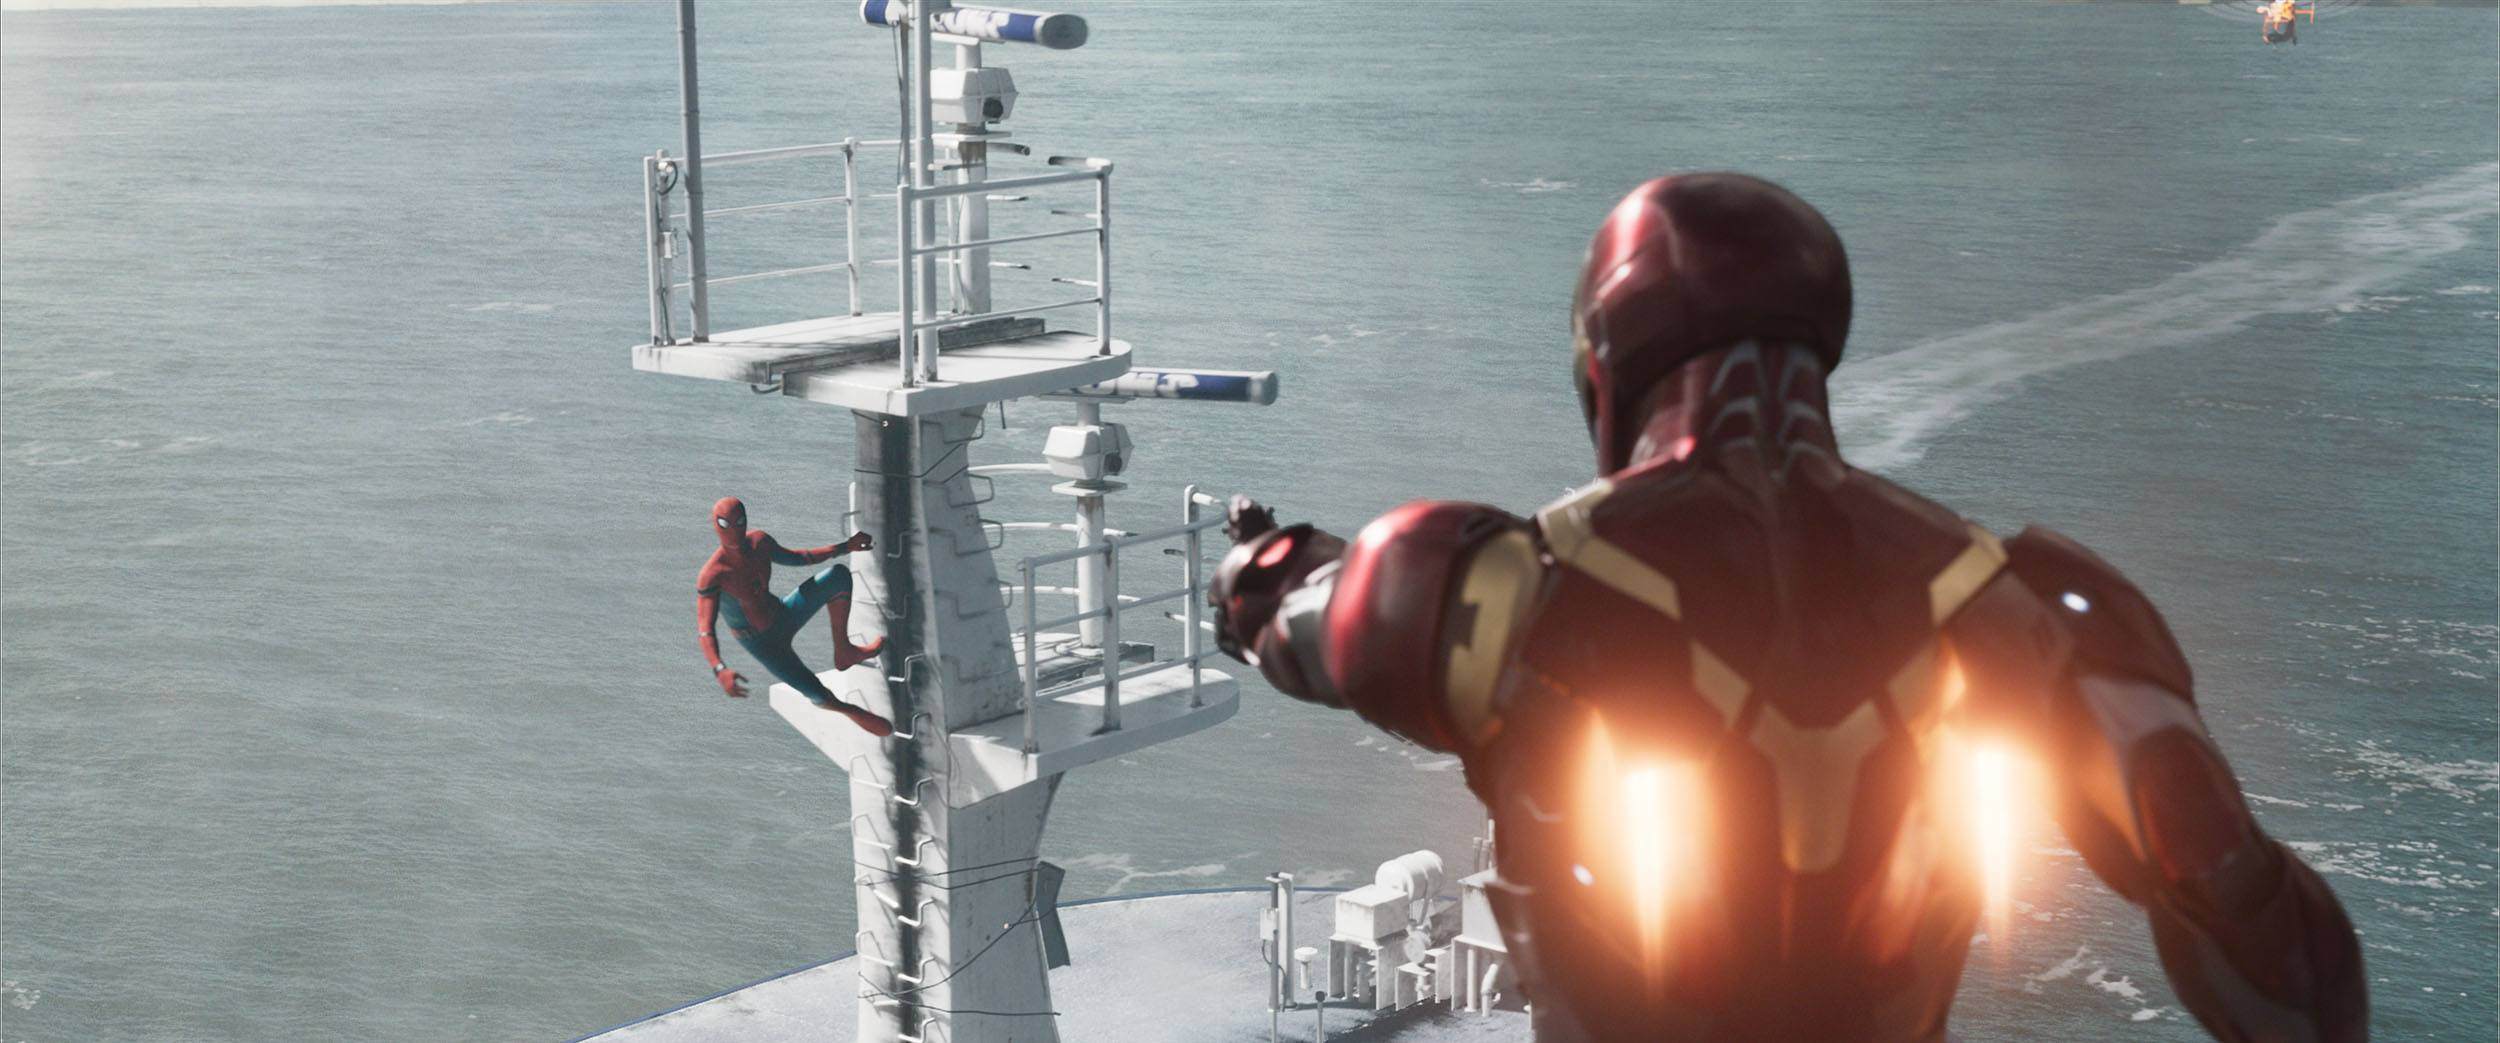 Spider-Man and Iron-Man during the Staten Island Ferry sequence in Spider-Man: Homecoming (Columbia Pictures via Digital Domain)